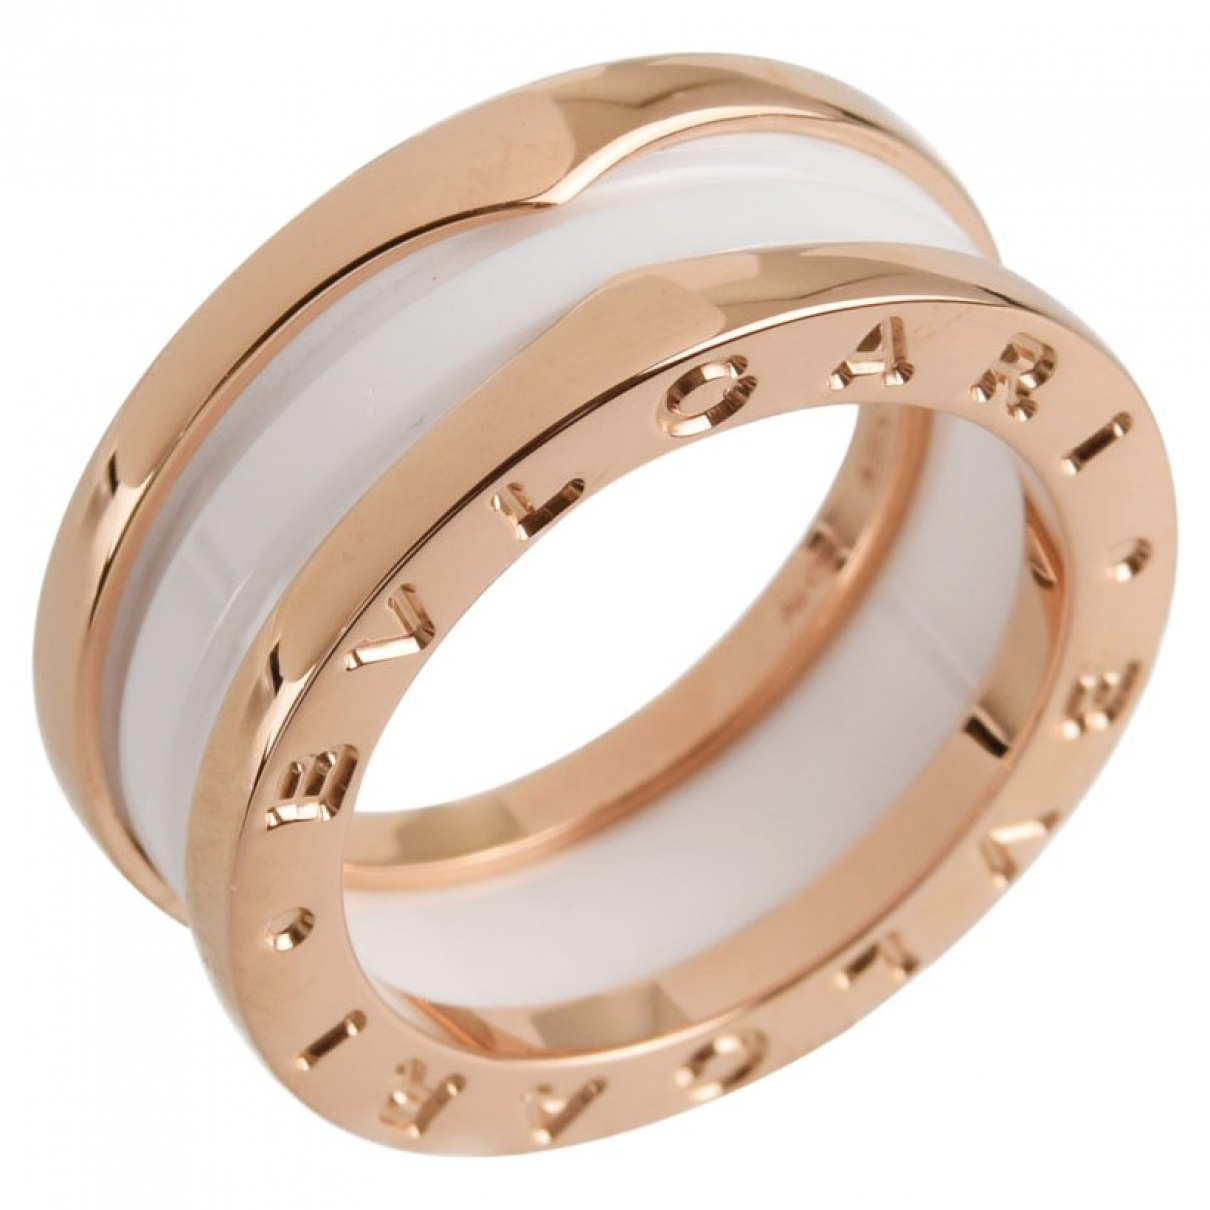 Bvlgari B.Zero1 Ring in  Gold Rosegold